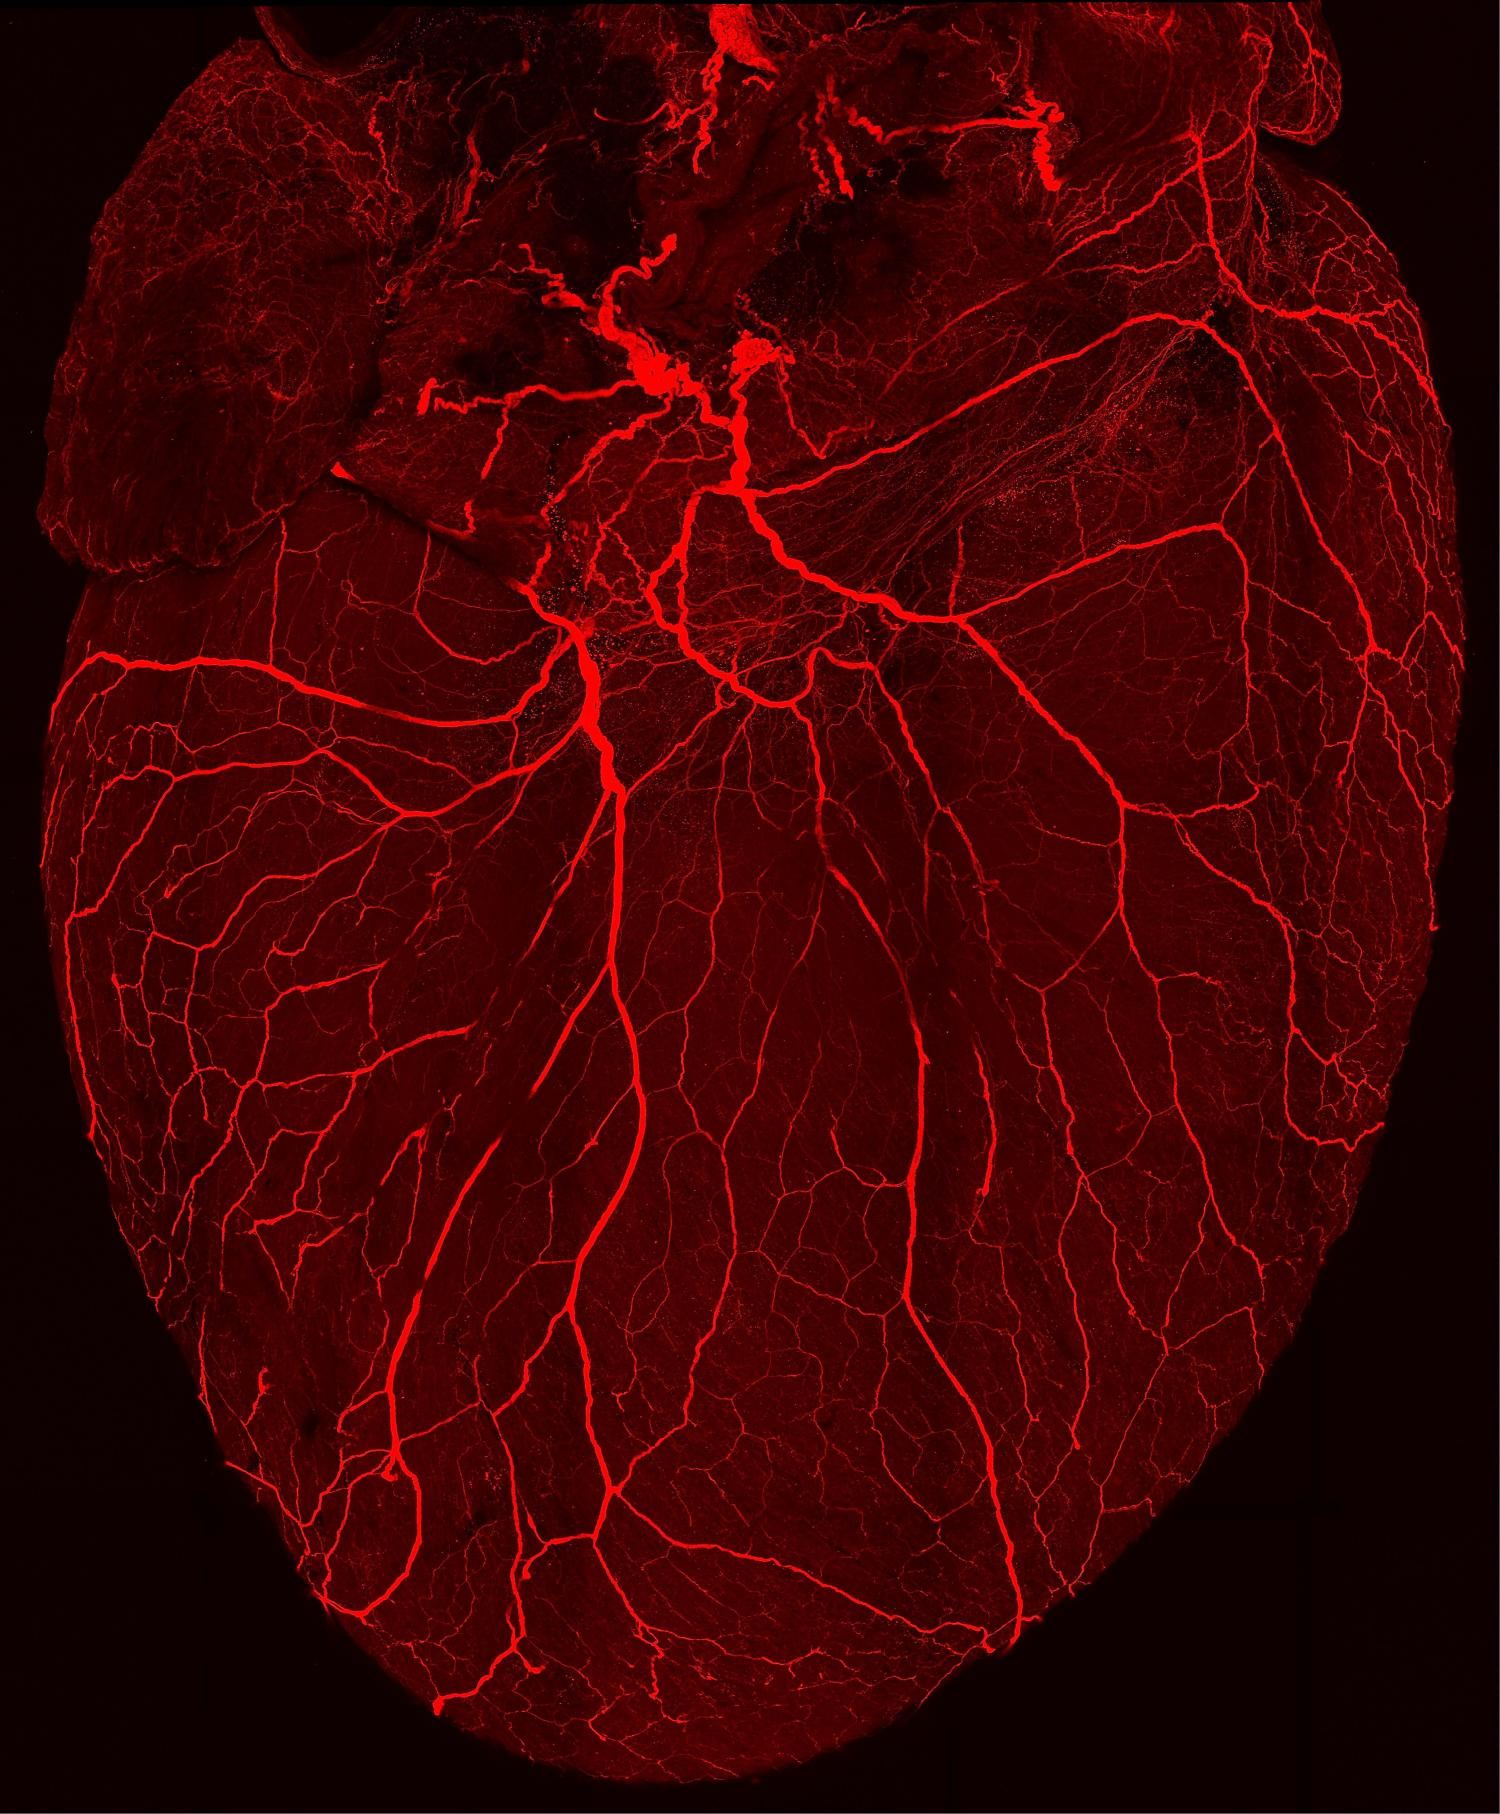 UCLAled consortium will map the hearts nervous system